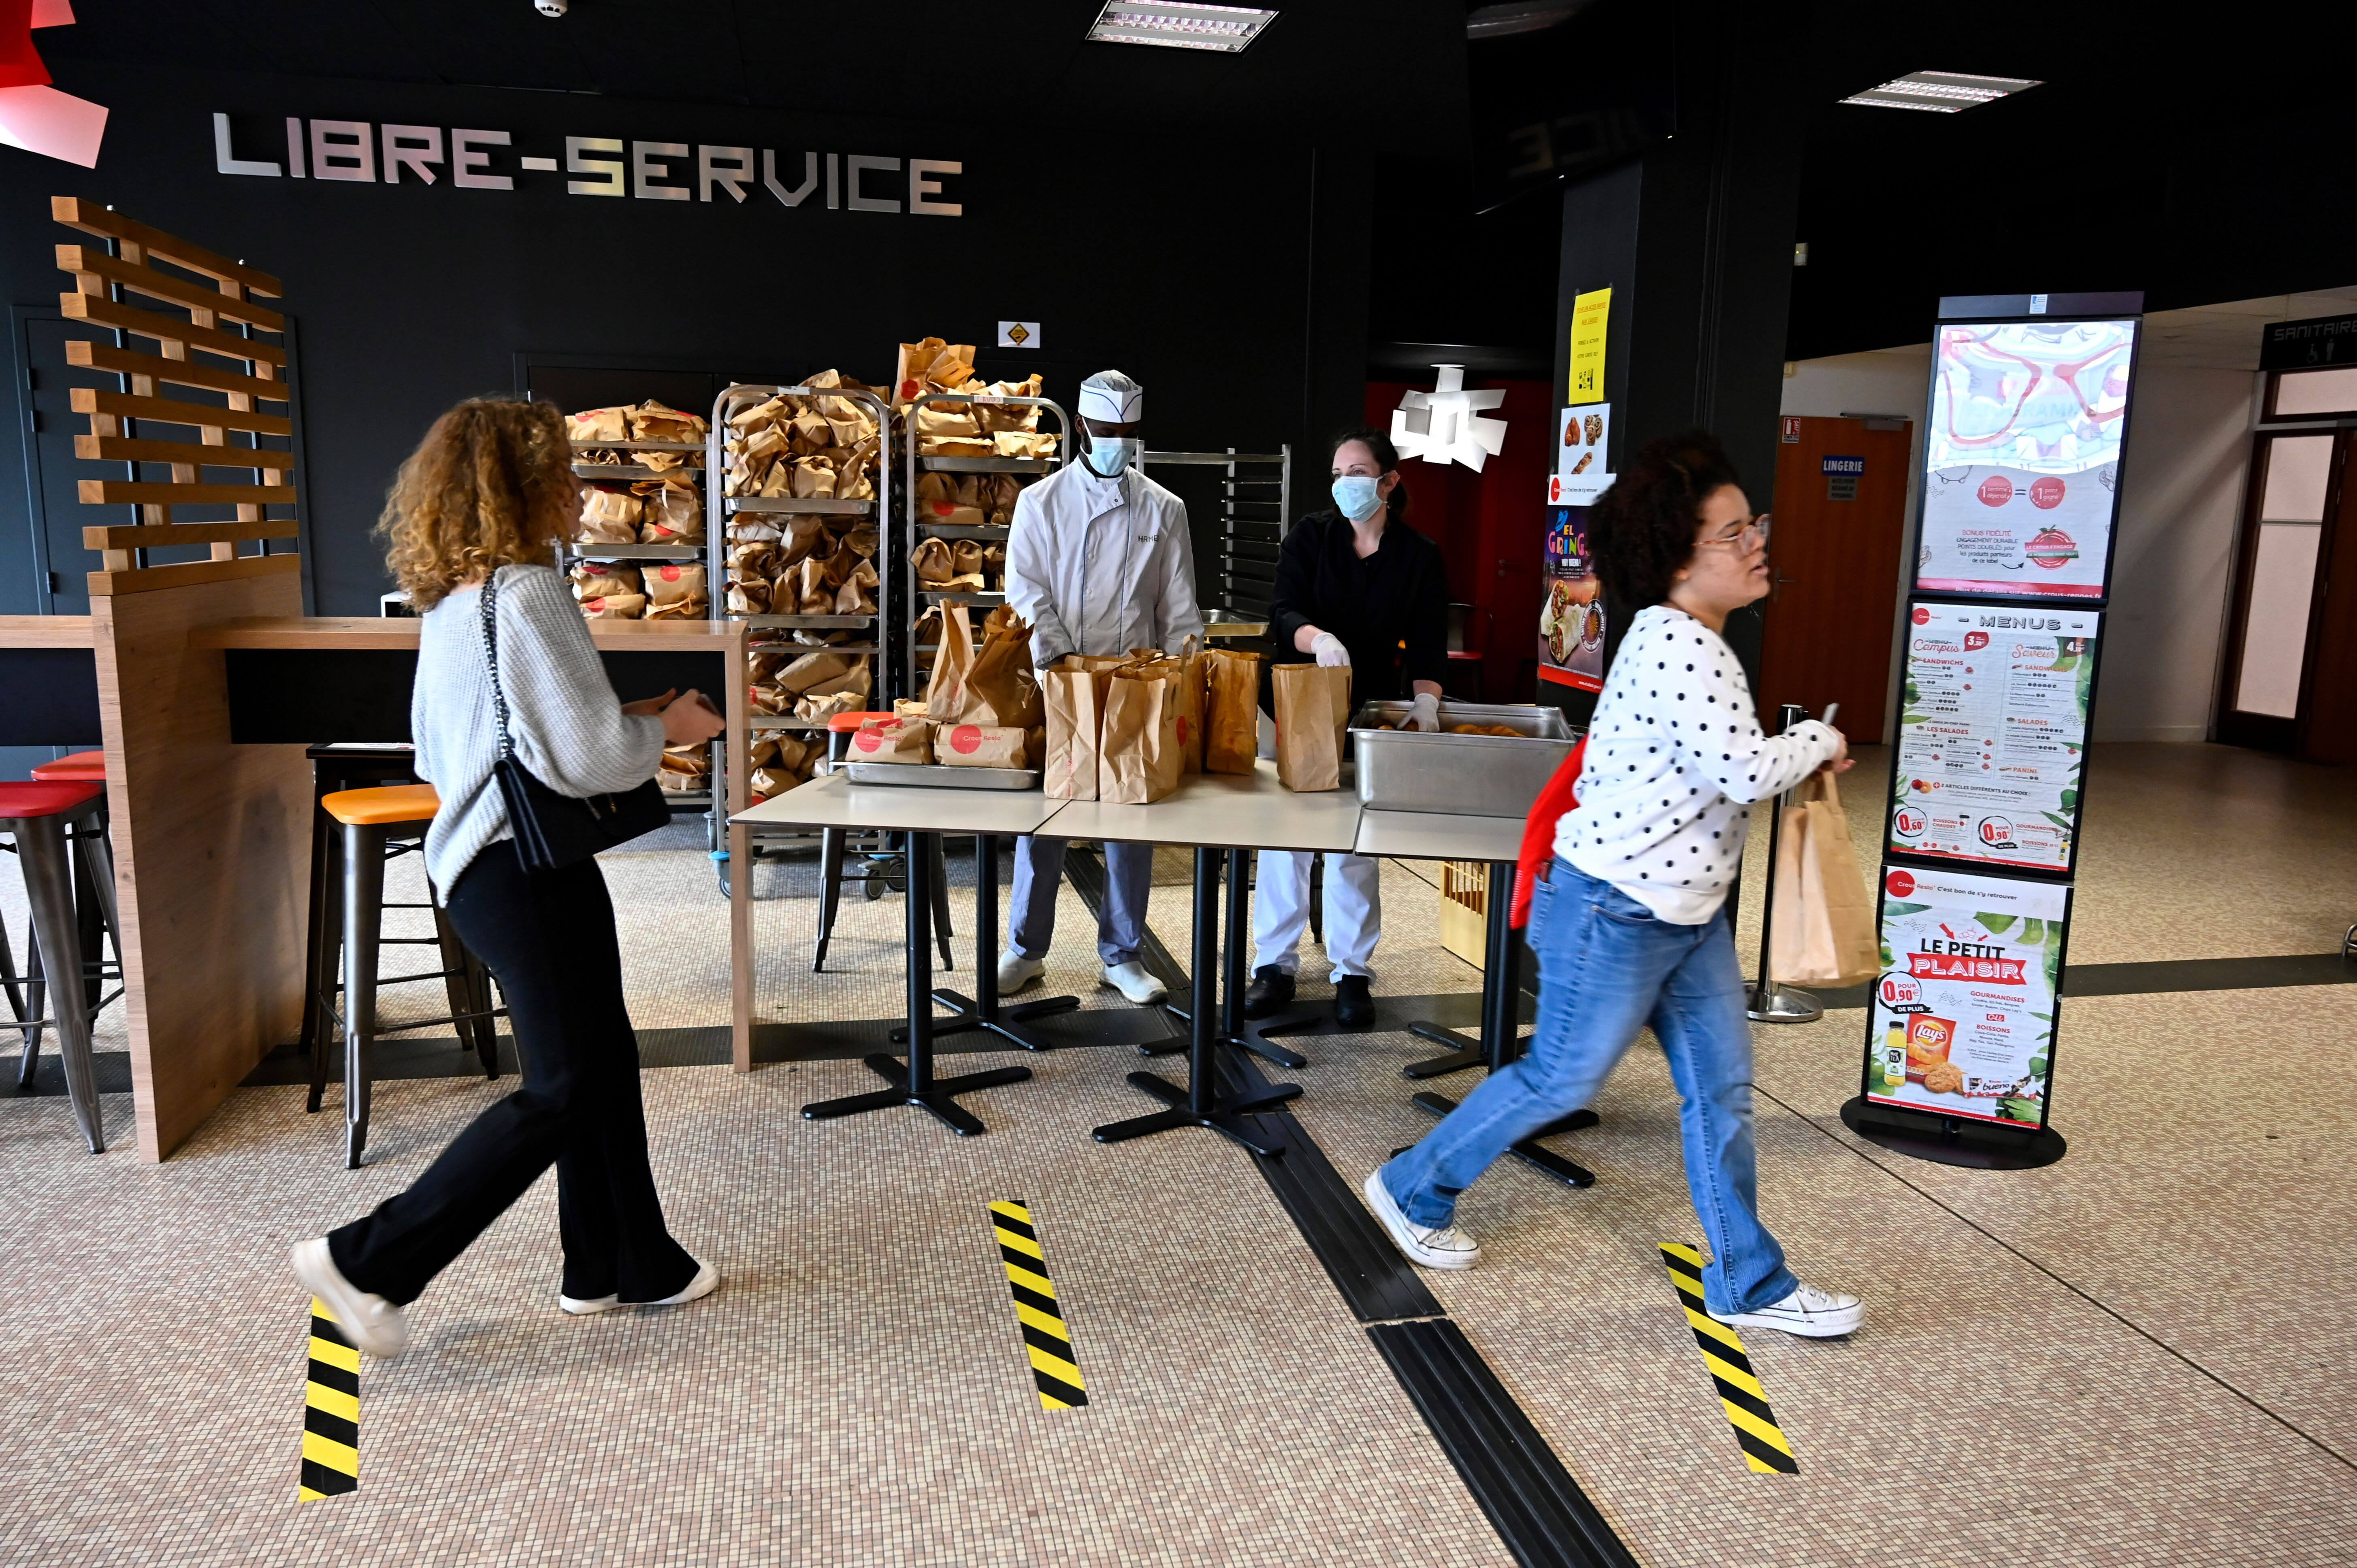 France offers Covid-hit students cheap meals